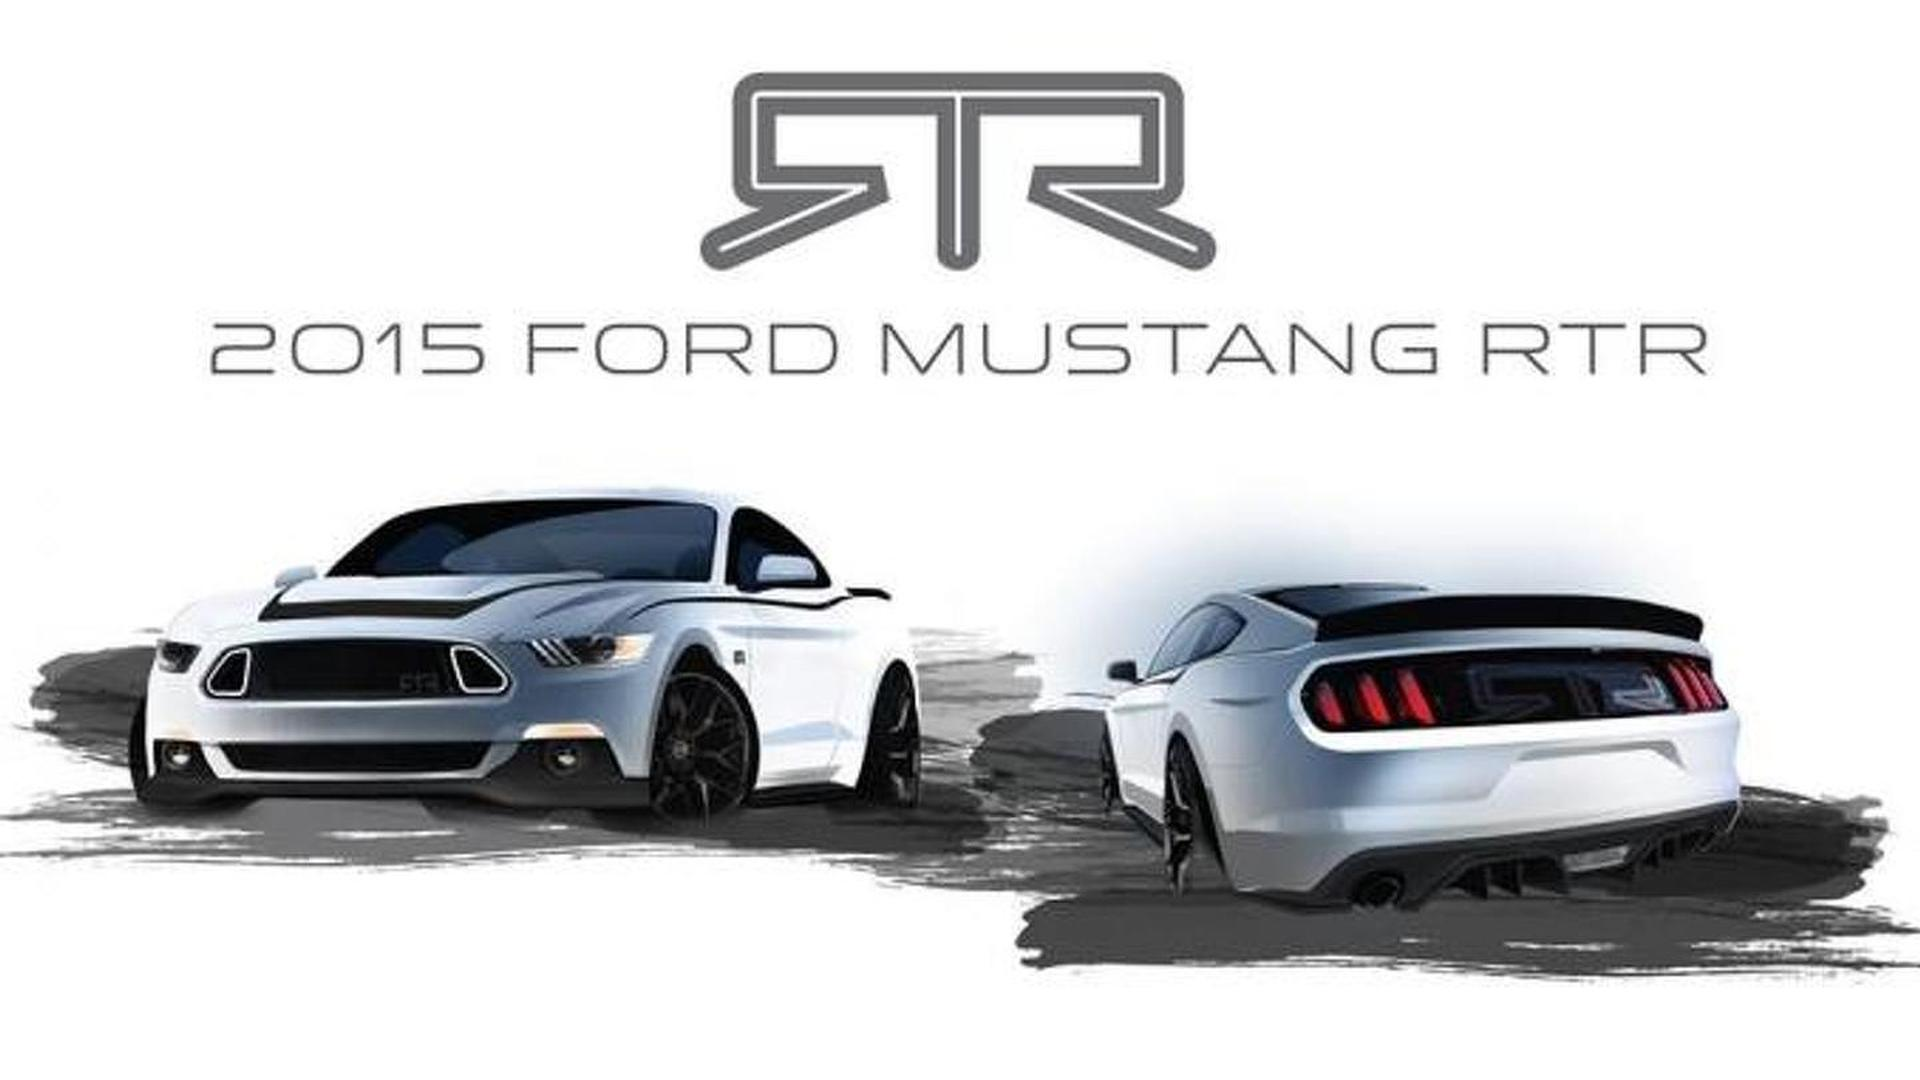 Ford Mustang RTR teased, goes on sale early next year